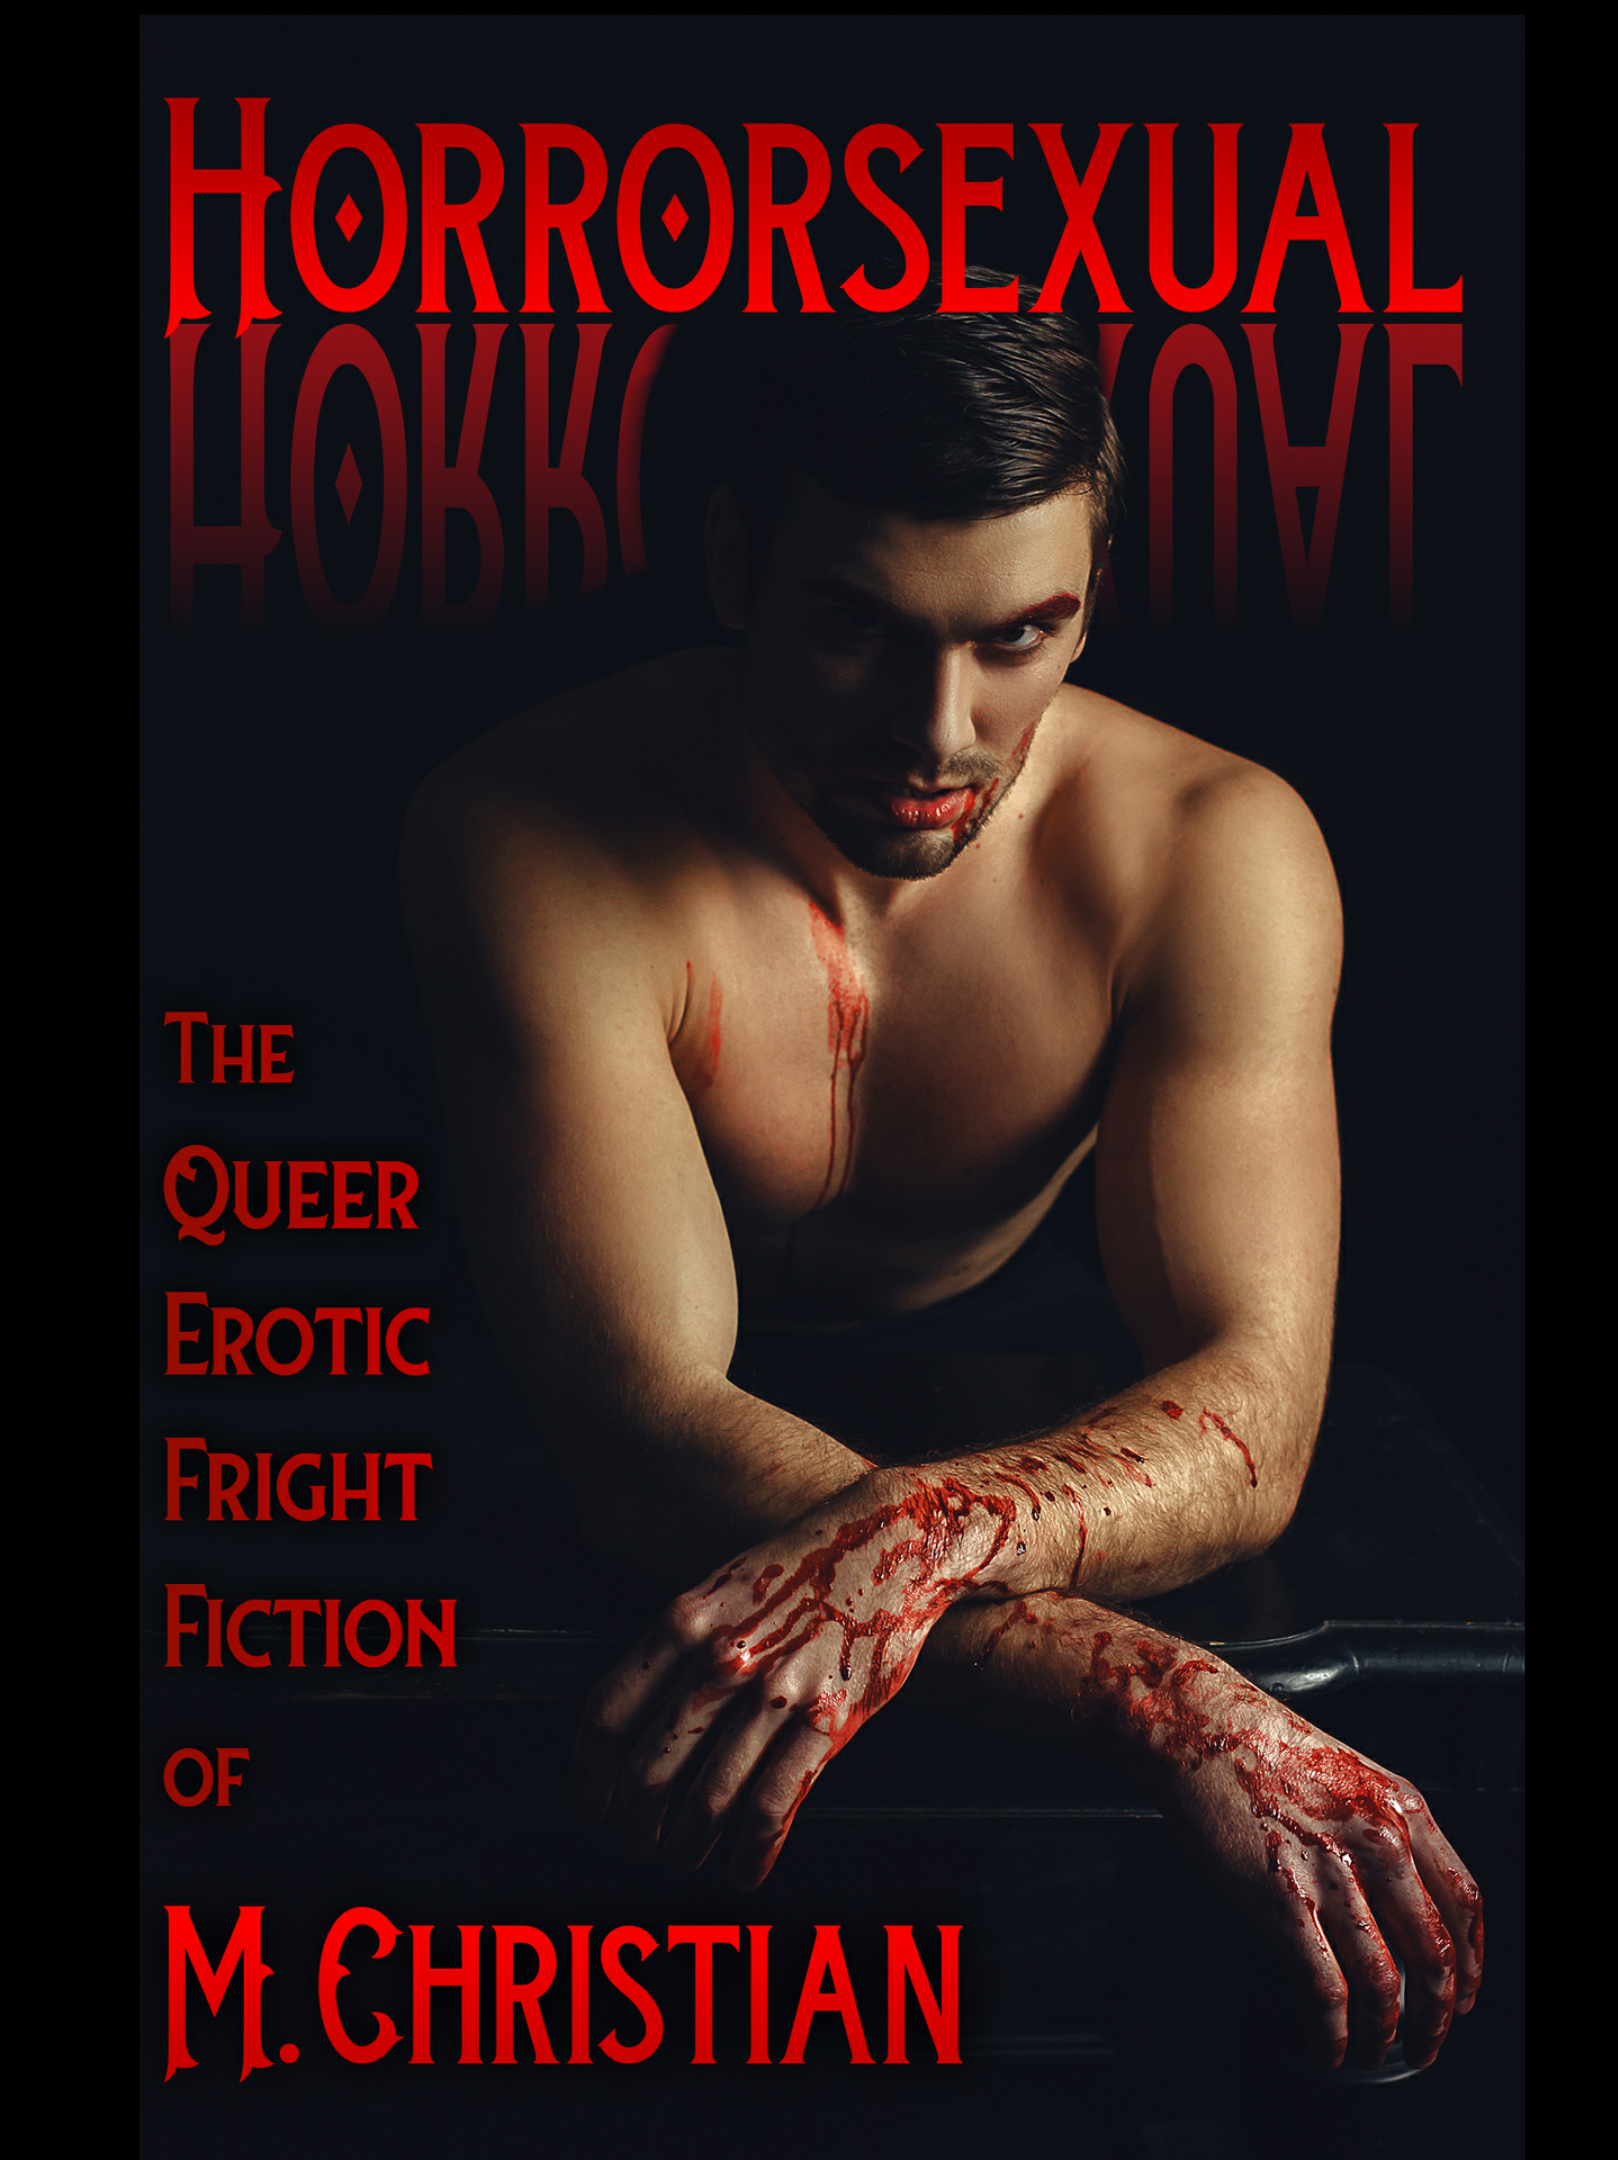 Horrorsexual: The Queer Erotic Fright Fiction Of M.Christian Kindle Edition